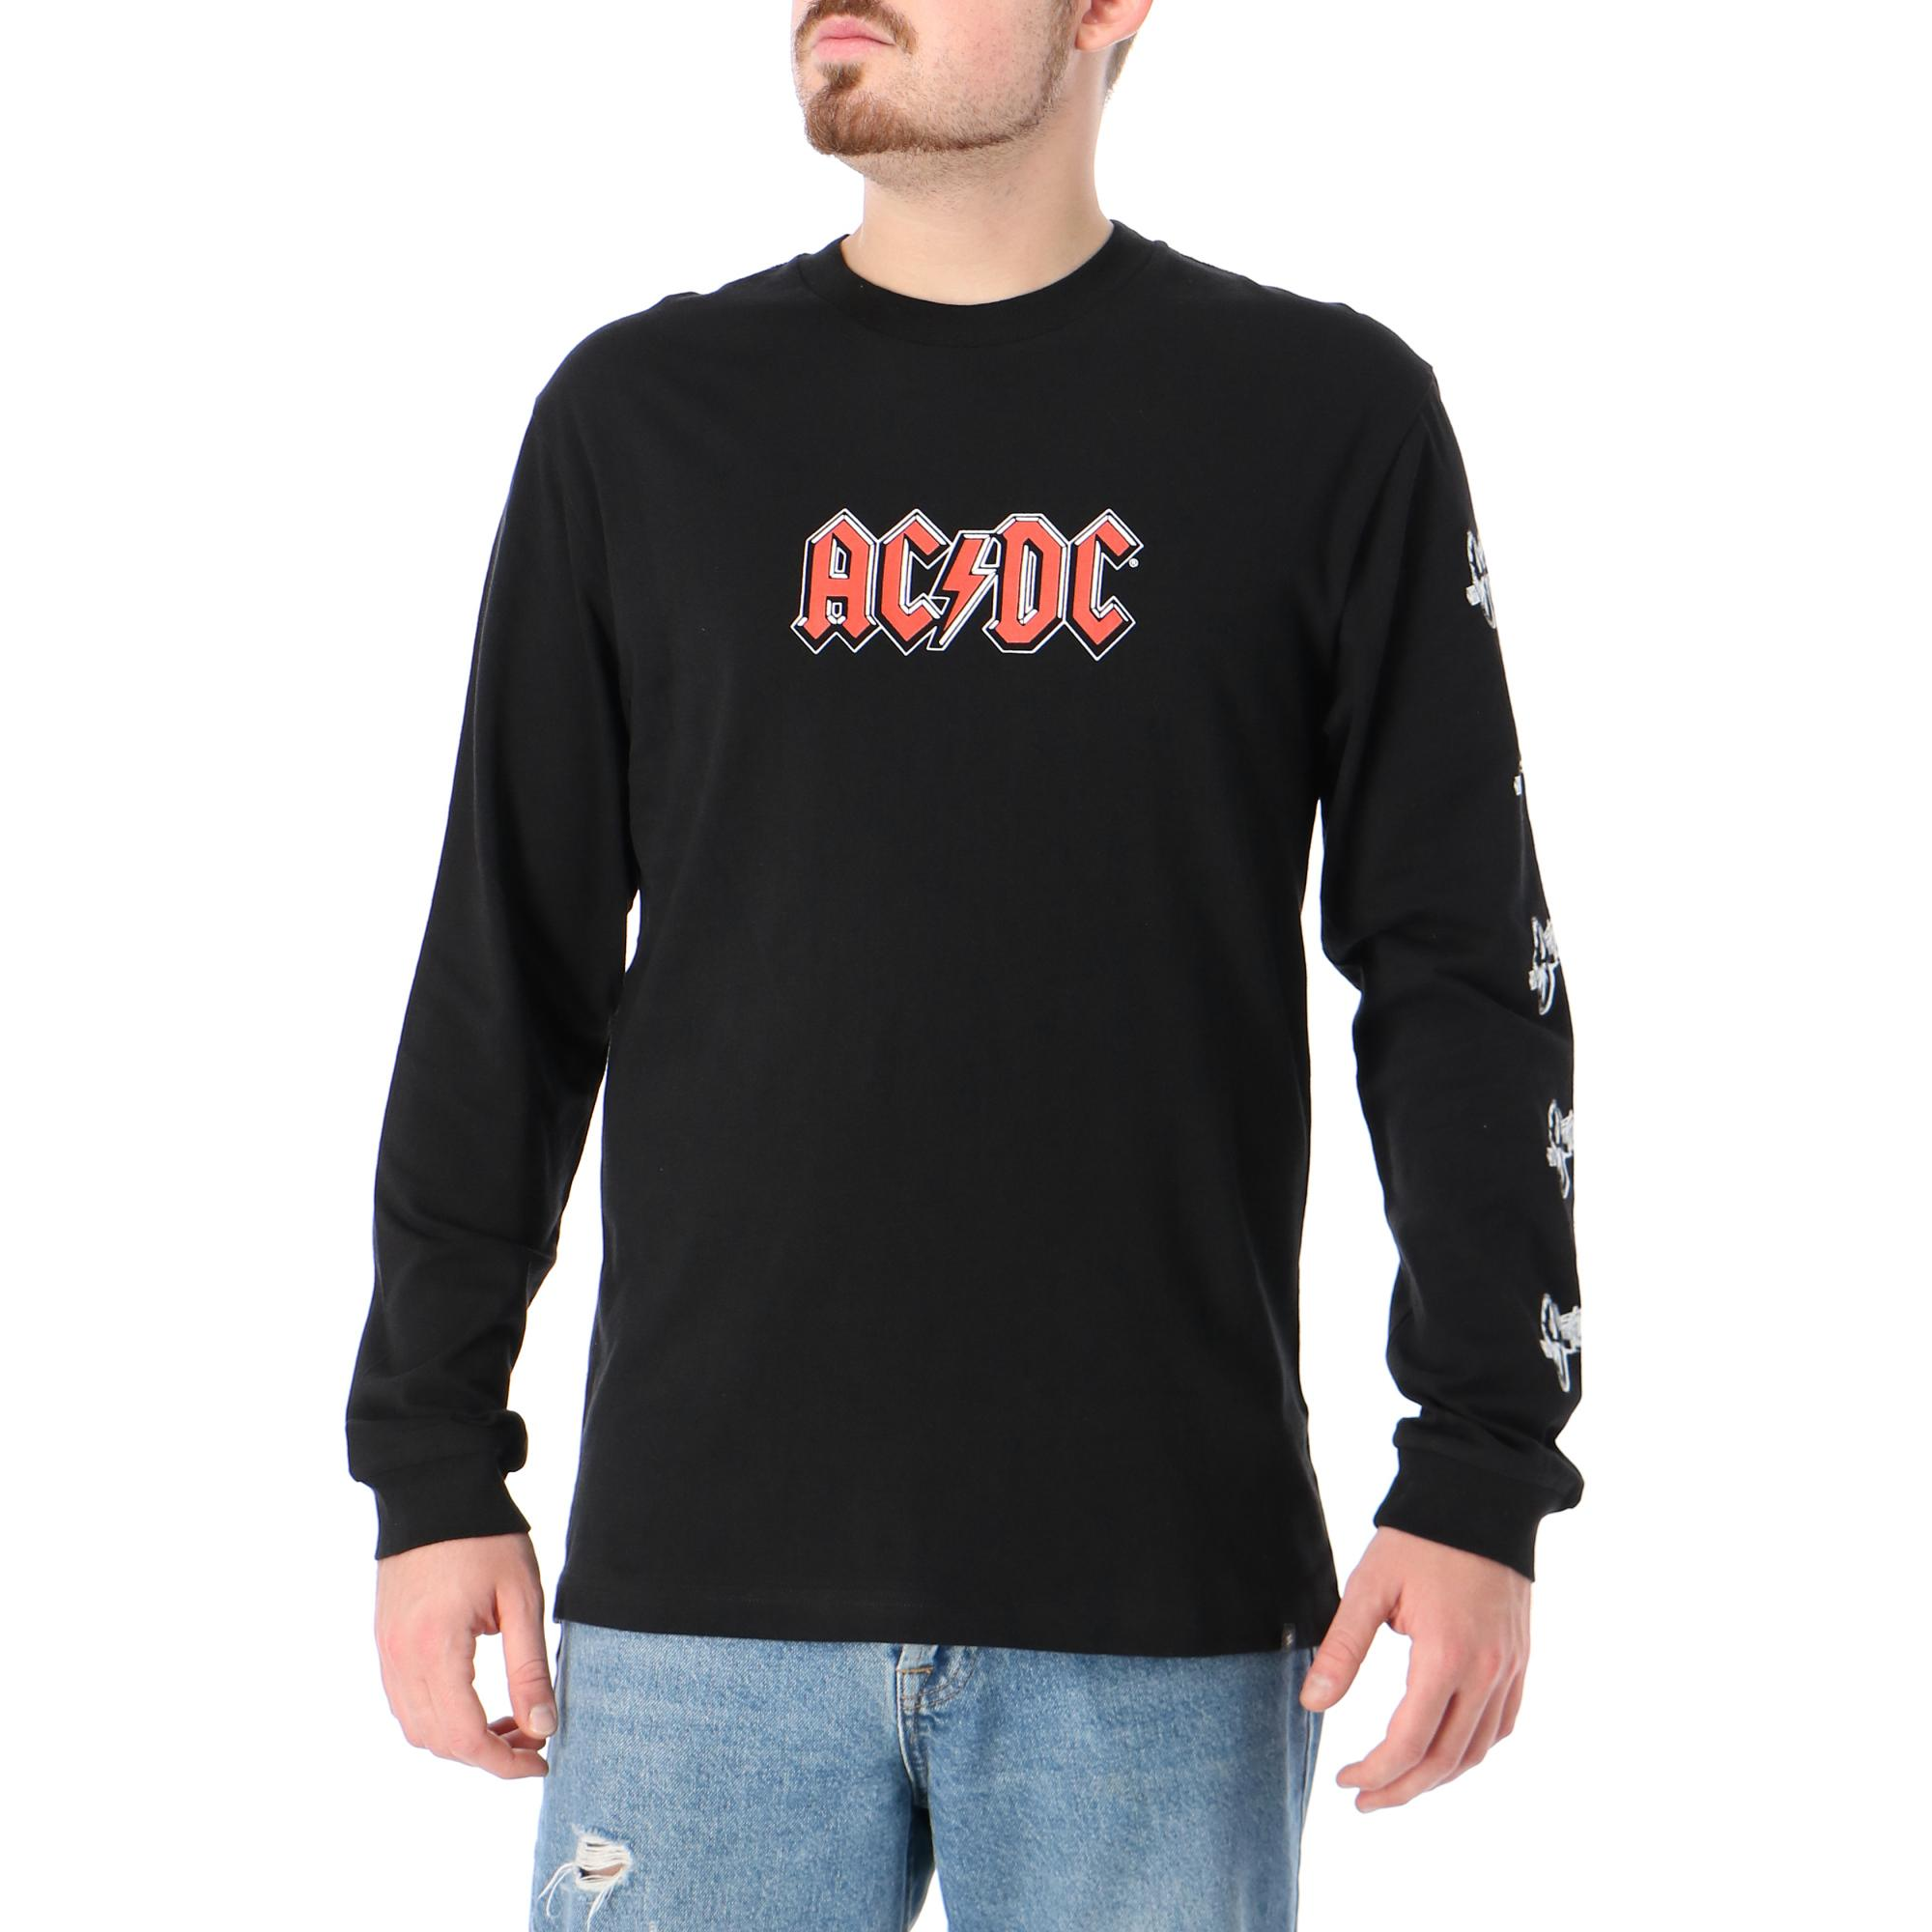 Dc Acdc About To Rock Ls Black